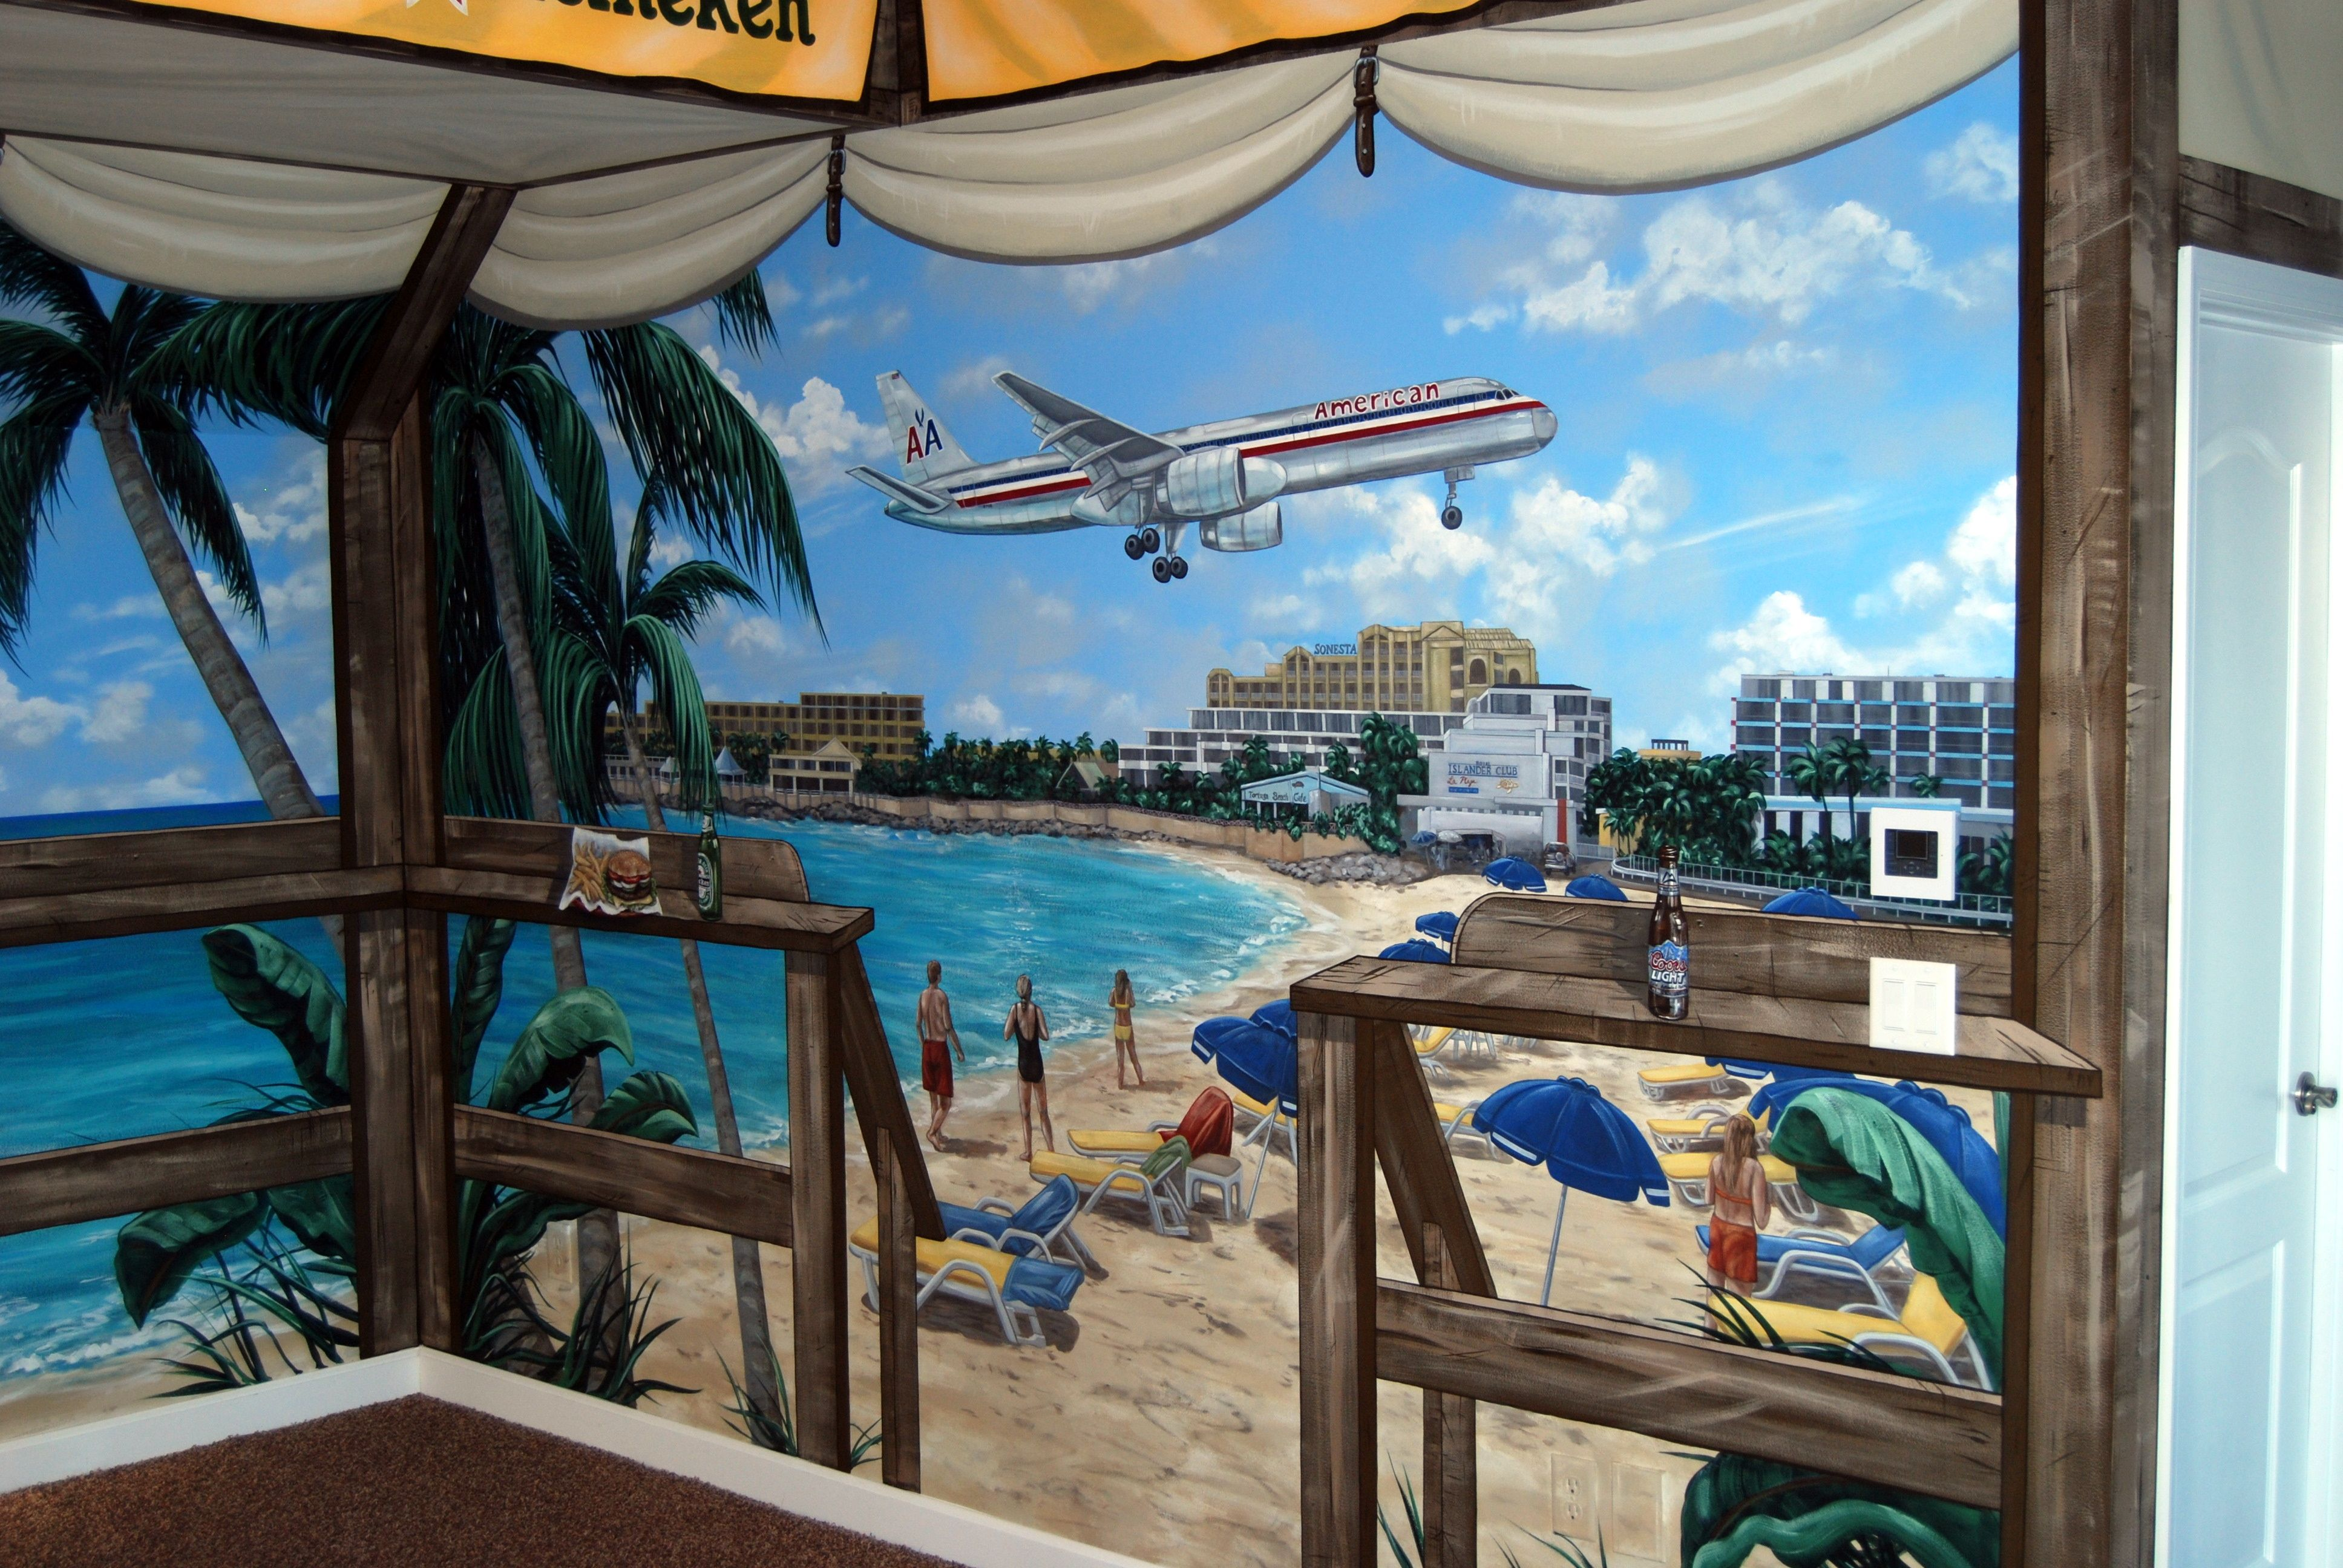 St Maarten Beach Bar Themed Mural By Tom Taylor Of Wow Effects